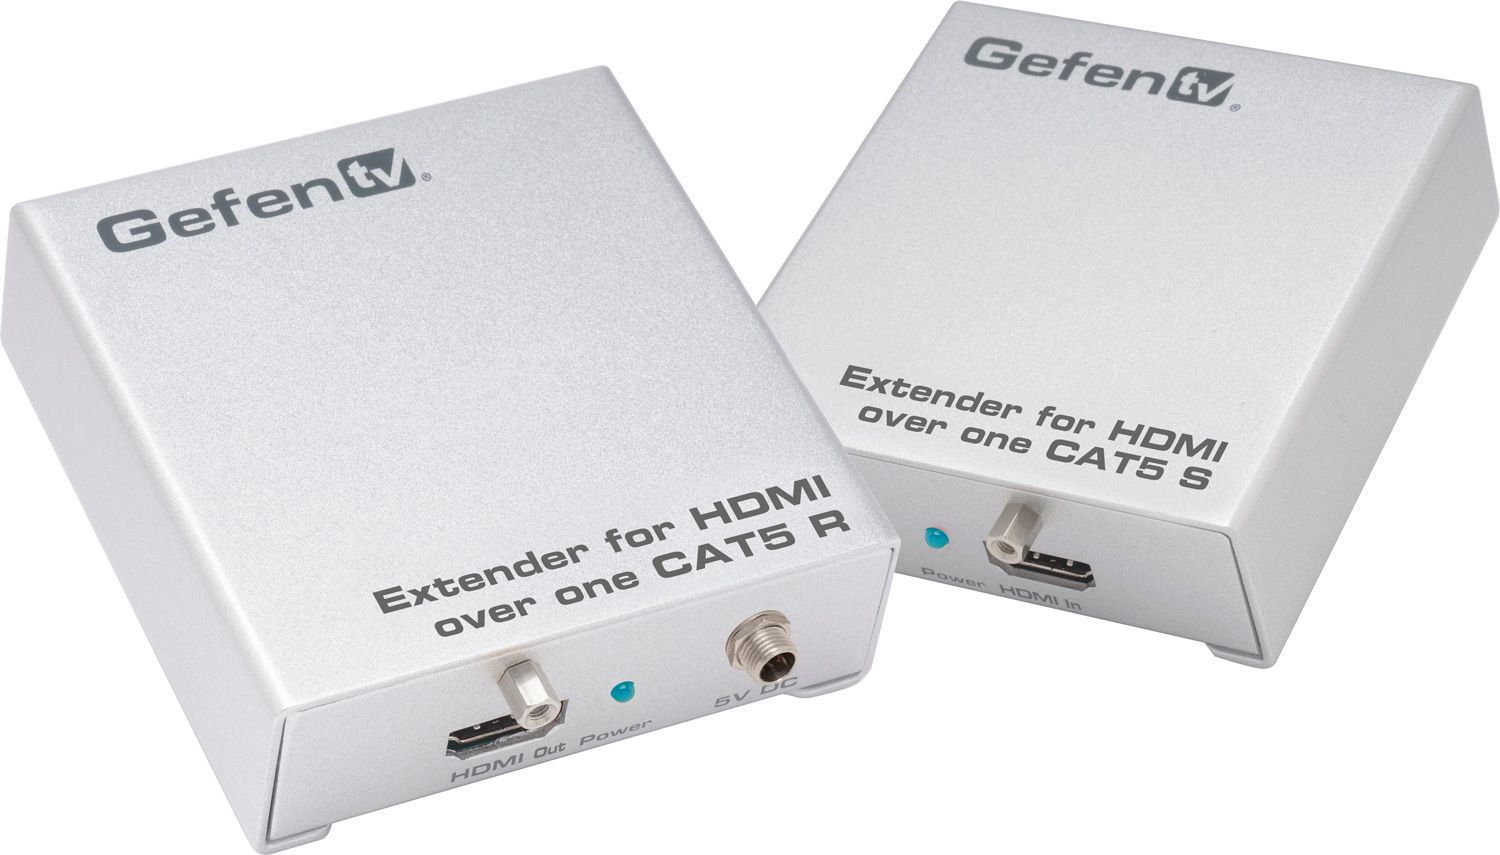 Gefen Hdbaset Extender For Hdmi Over One Cat5 Uses Cat 5e Wiring On Av Matrix Switches Audio Video Switch